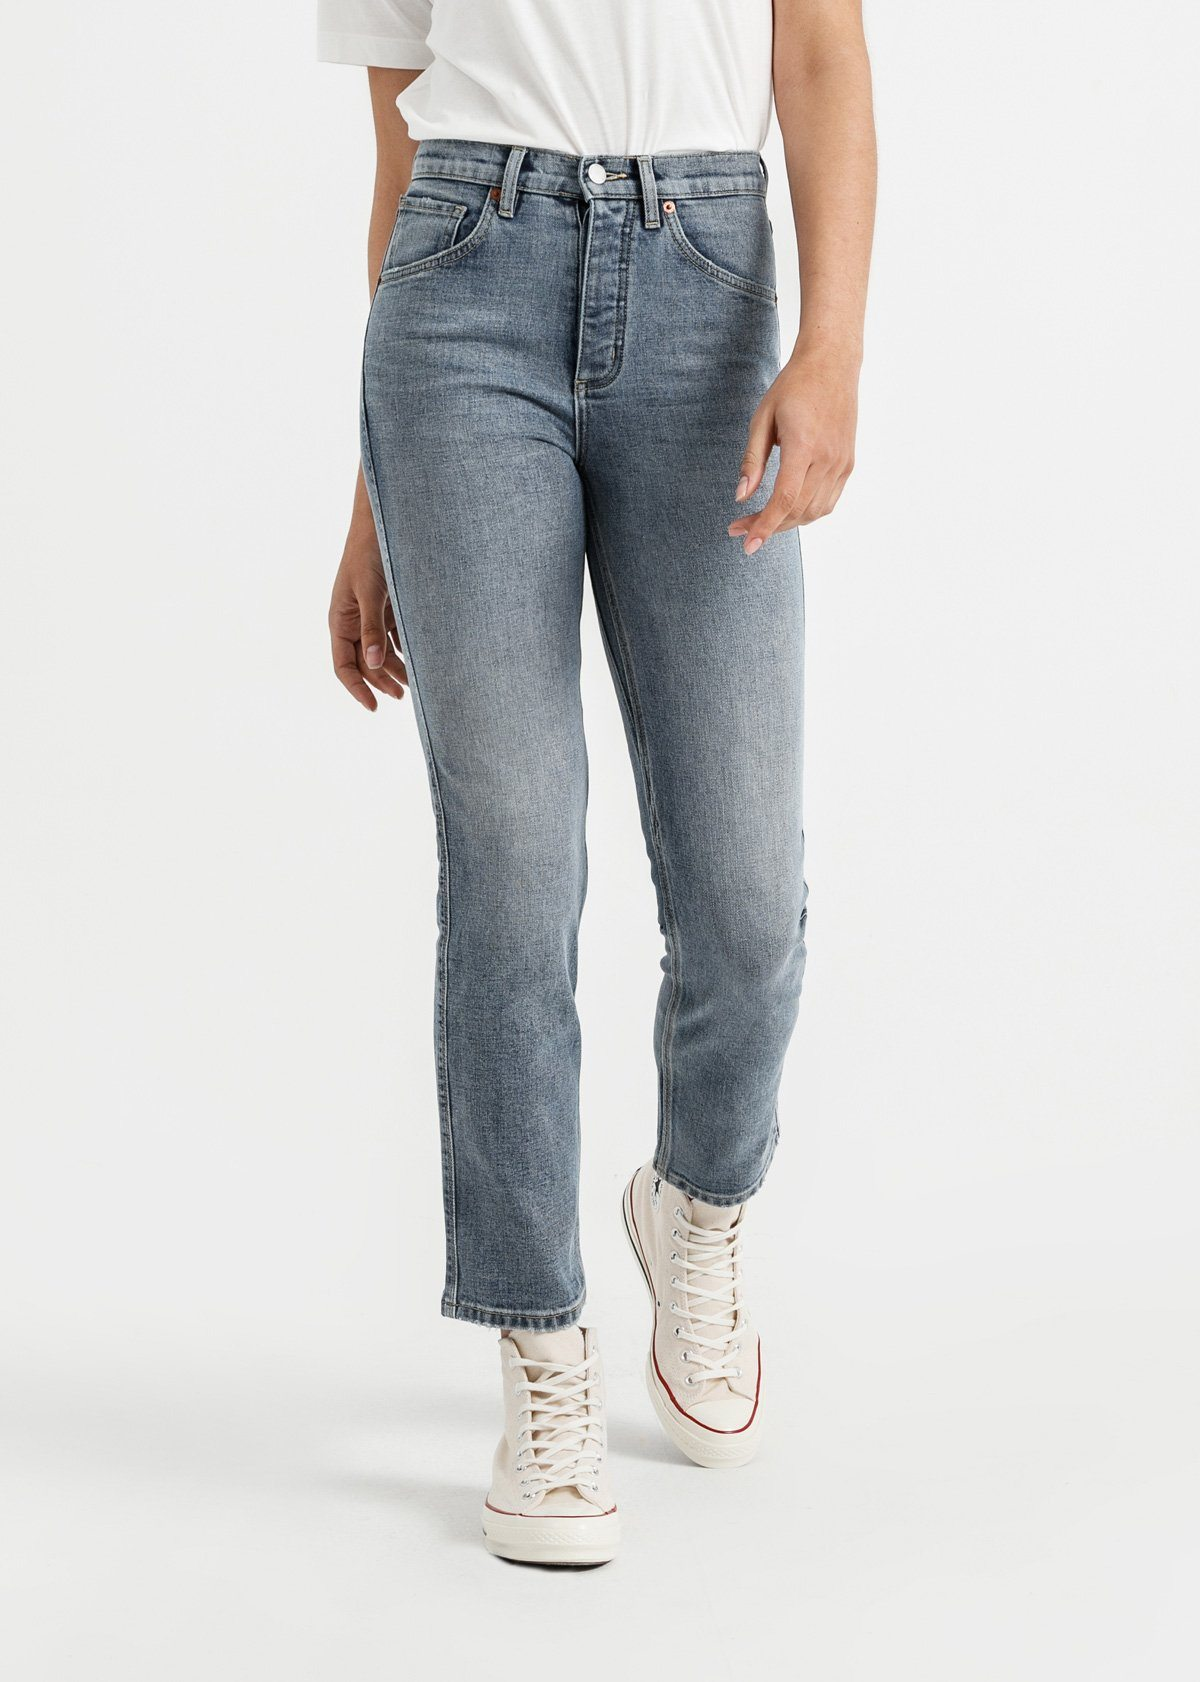 Women's High Rise Straight Stretch Jeans